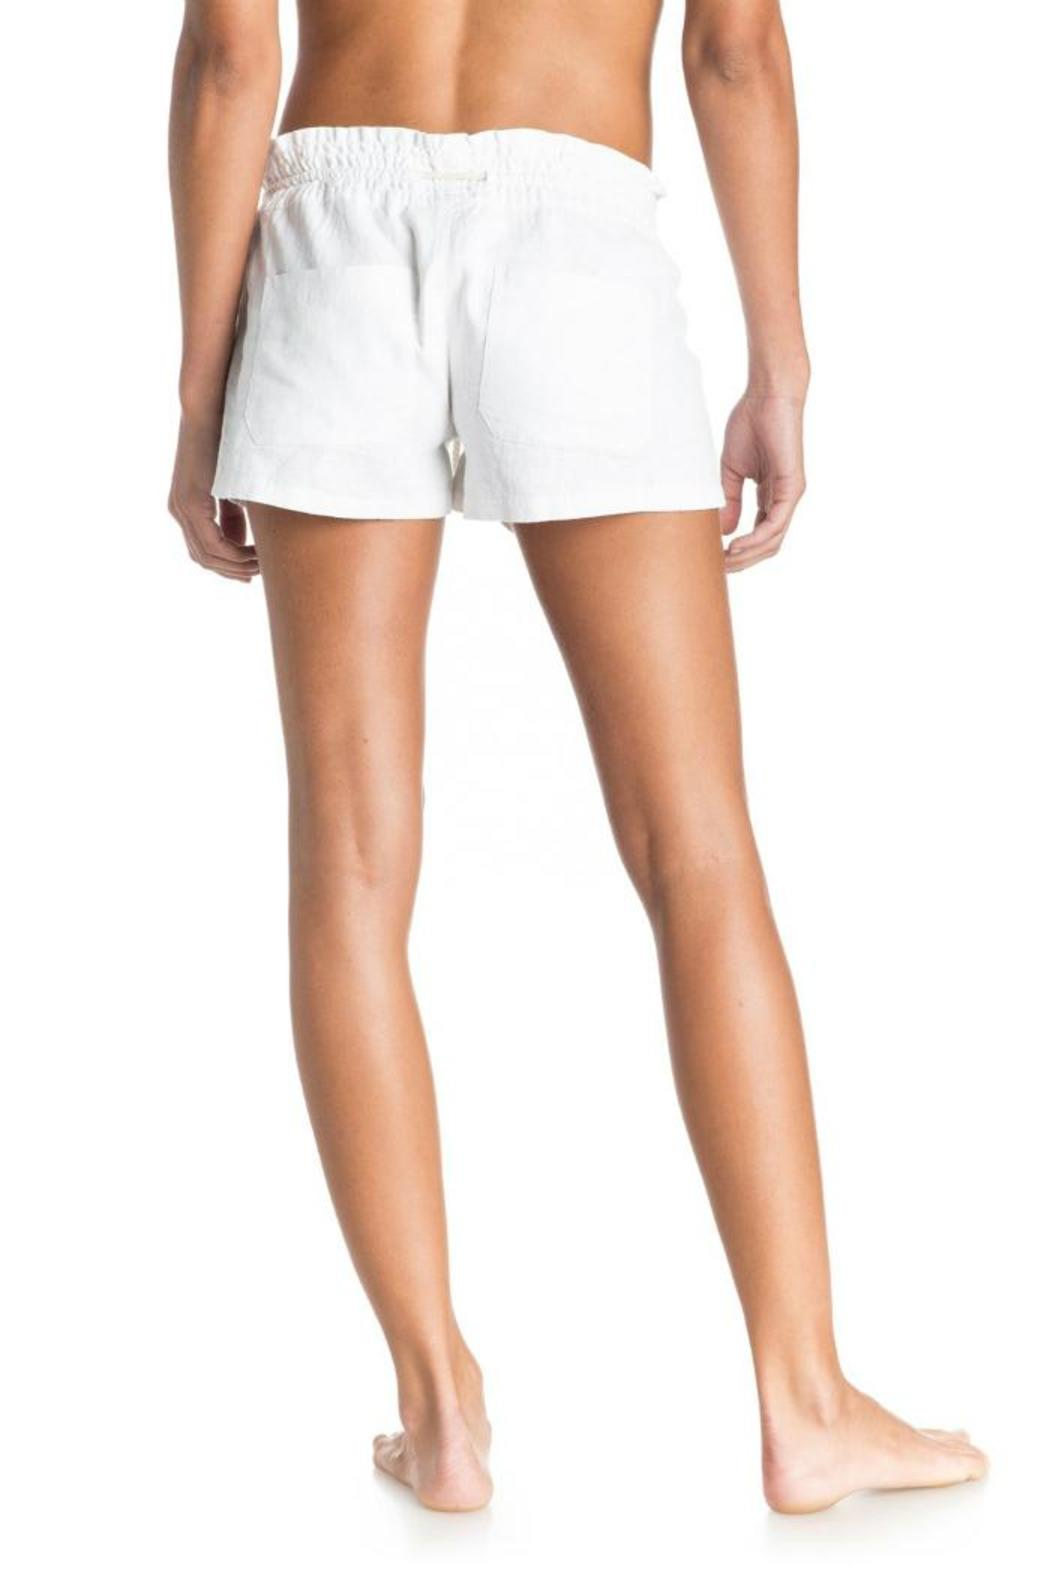 44320d40e8 Roxy Oceanside Beach Shorts from Minnesota by Big Island Swim & Surf ...